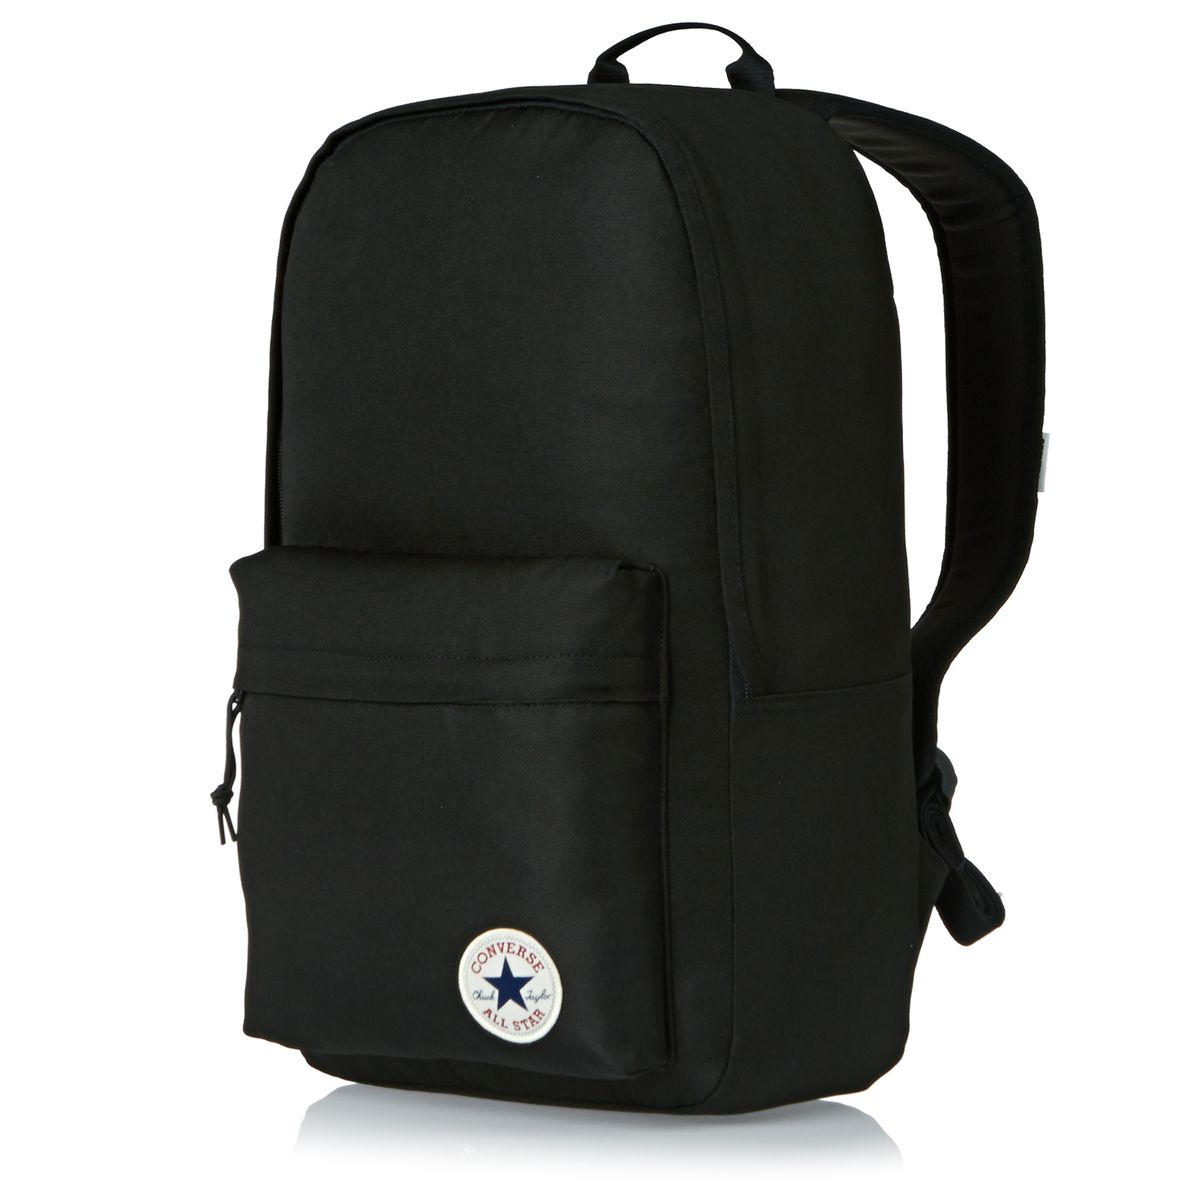 converse-backpacks-converse-poly-backpack-converse-black